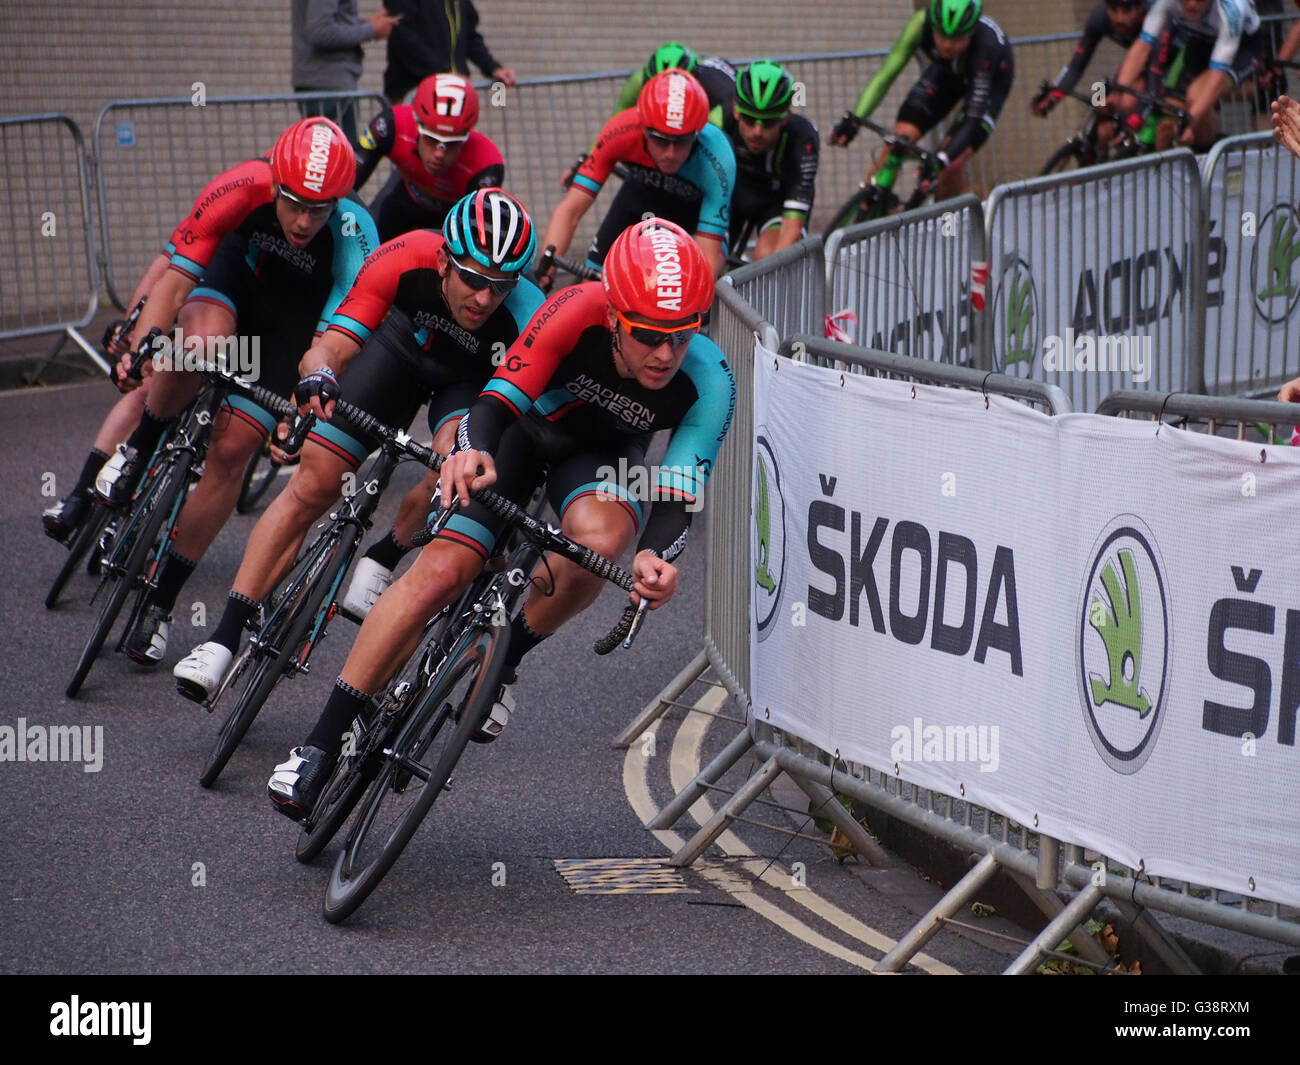 portsmouth-uk-09-june-2016-cyclists-from